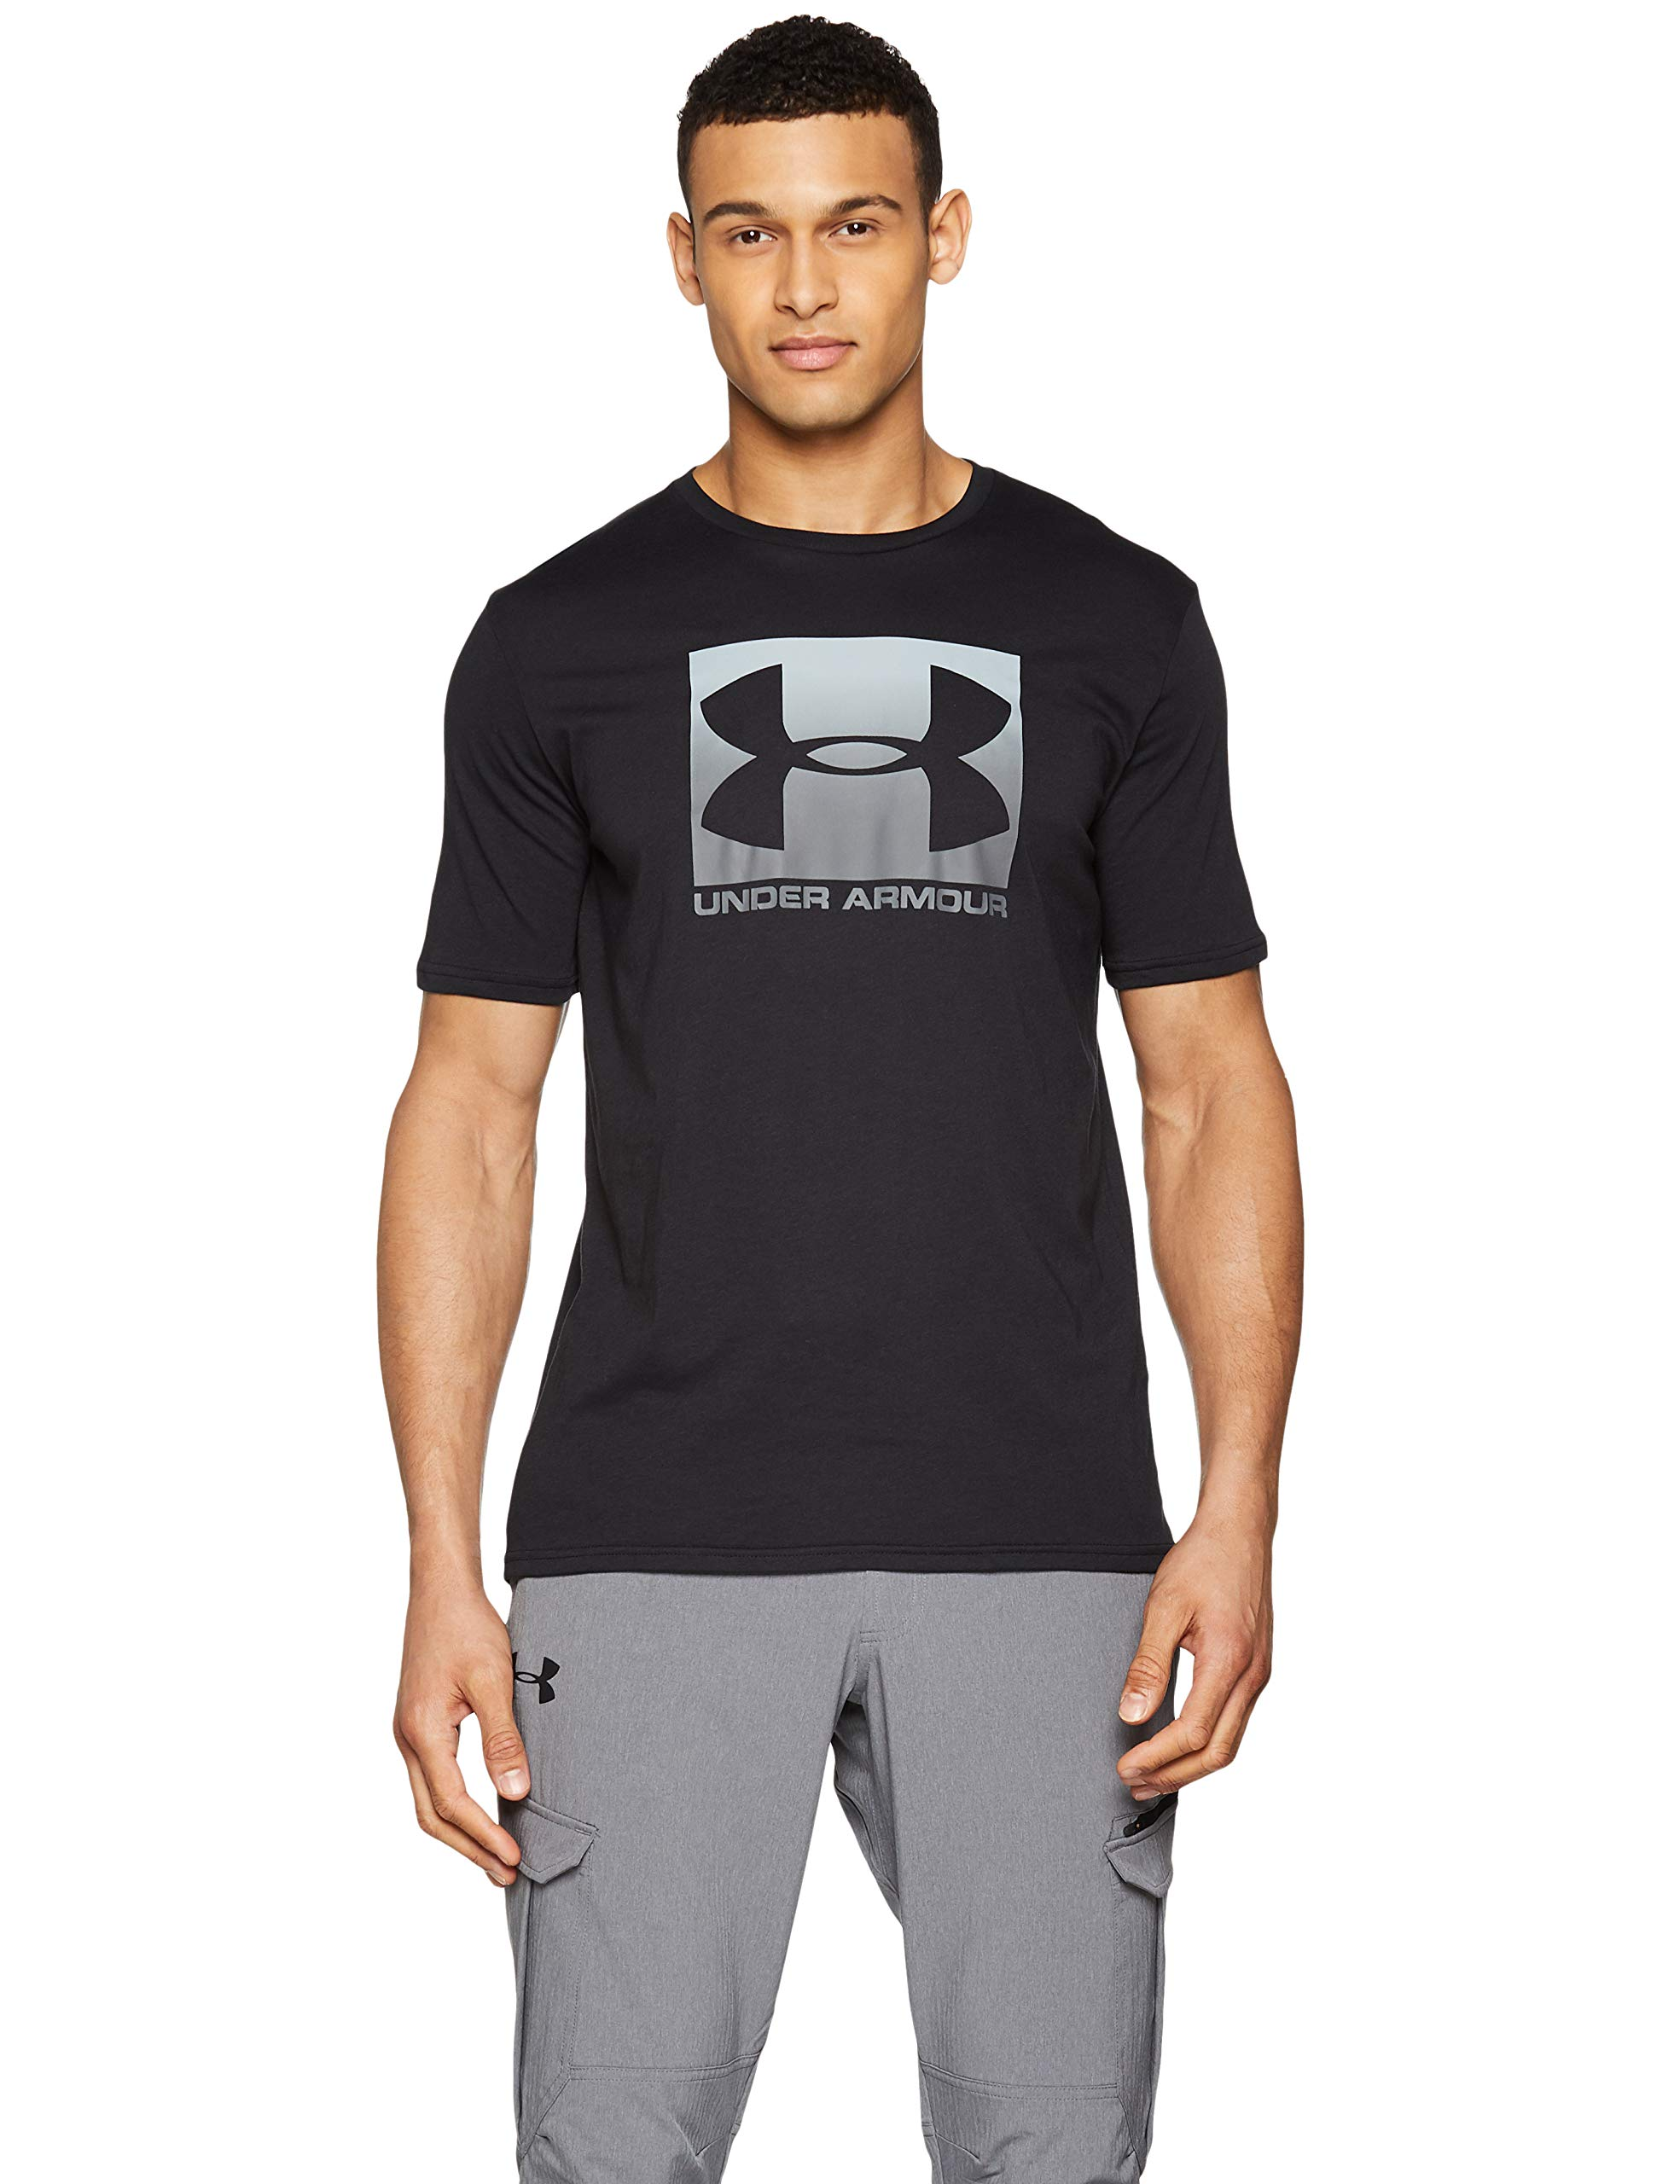 Under Armour Men's Boxed Sportstyle Short Sleeve Shirt, Black (001)/Graphite, XX-Large by Under Armour